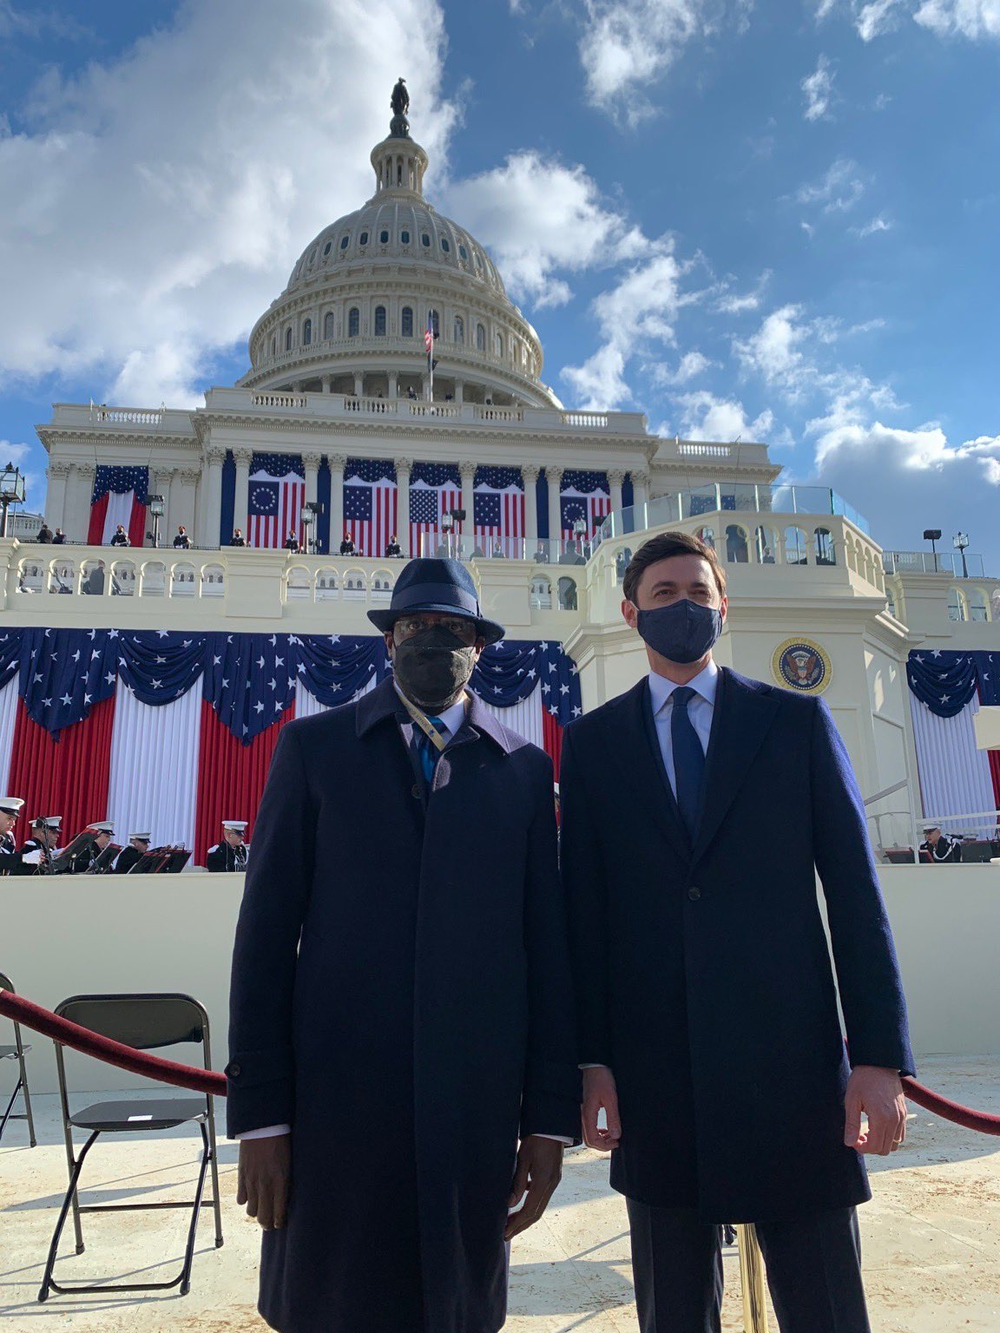 Sens. Raphael Warnock and Jon Ossoff pose in front of the U.S. Capitol before the inauguration of President Joe Biden.